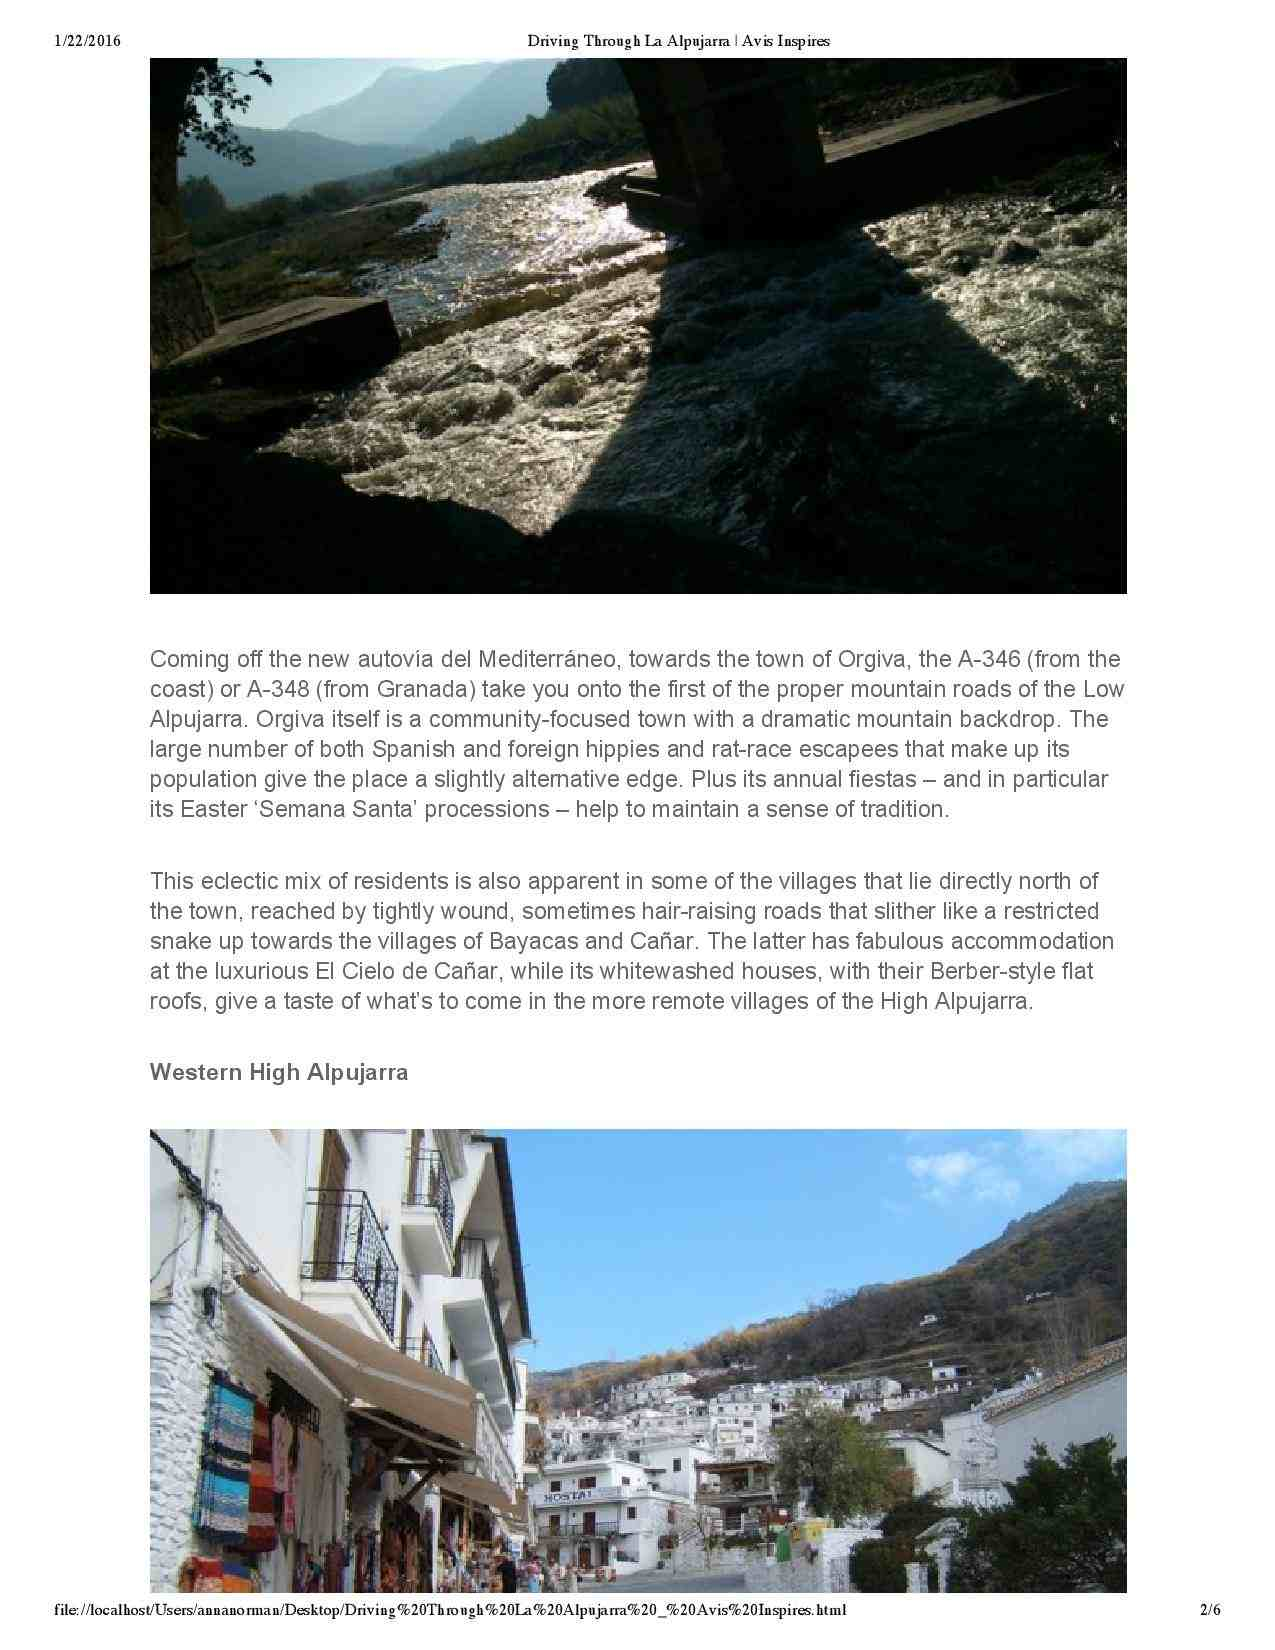 Driving Through La Alpujarra _ Avis Inspires-page-002